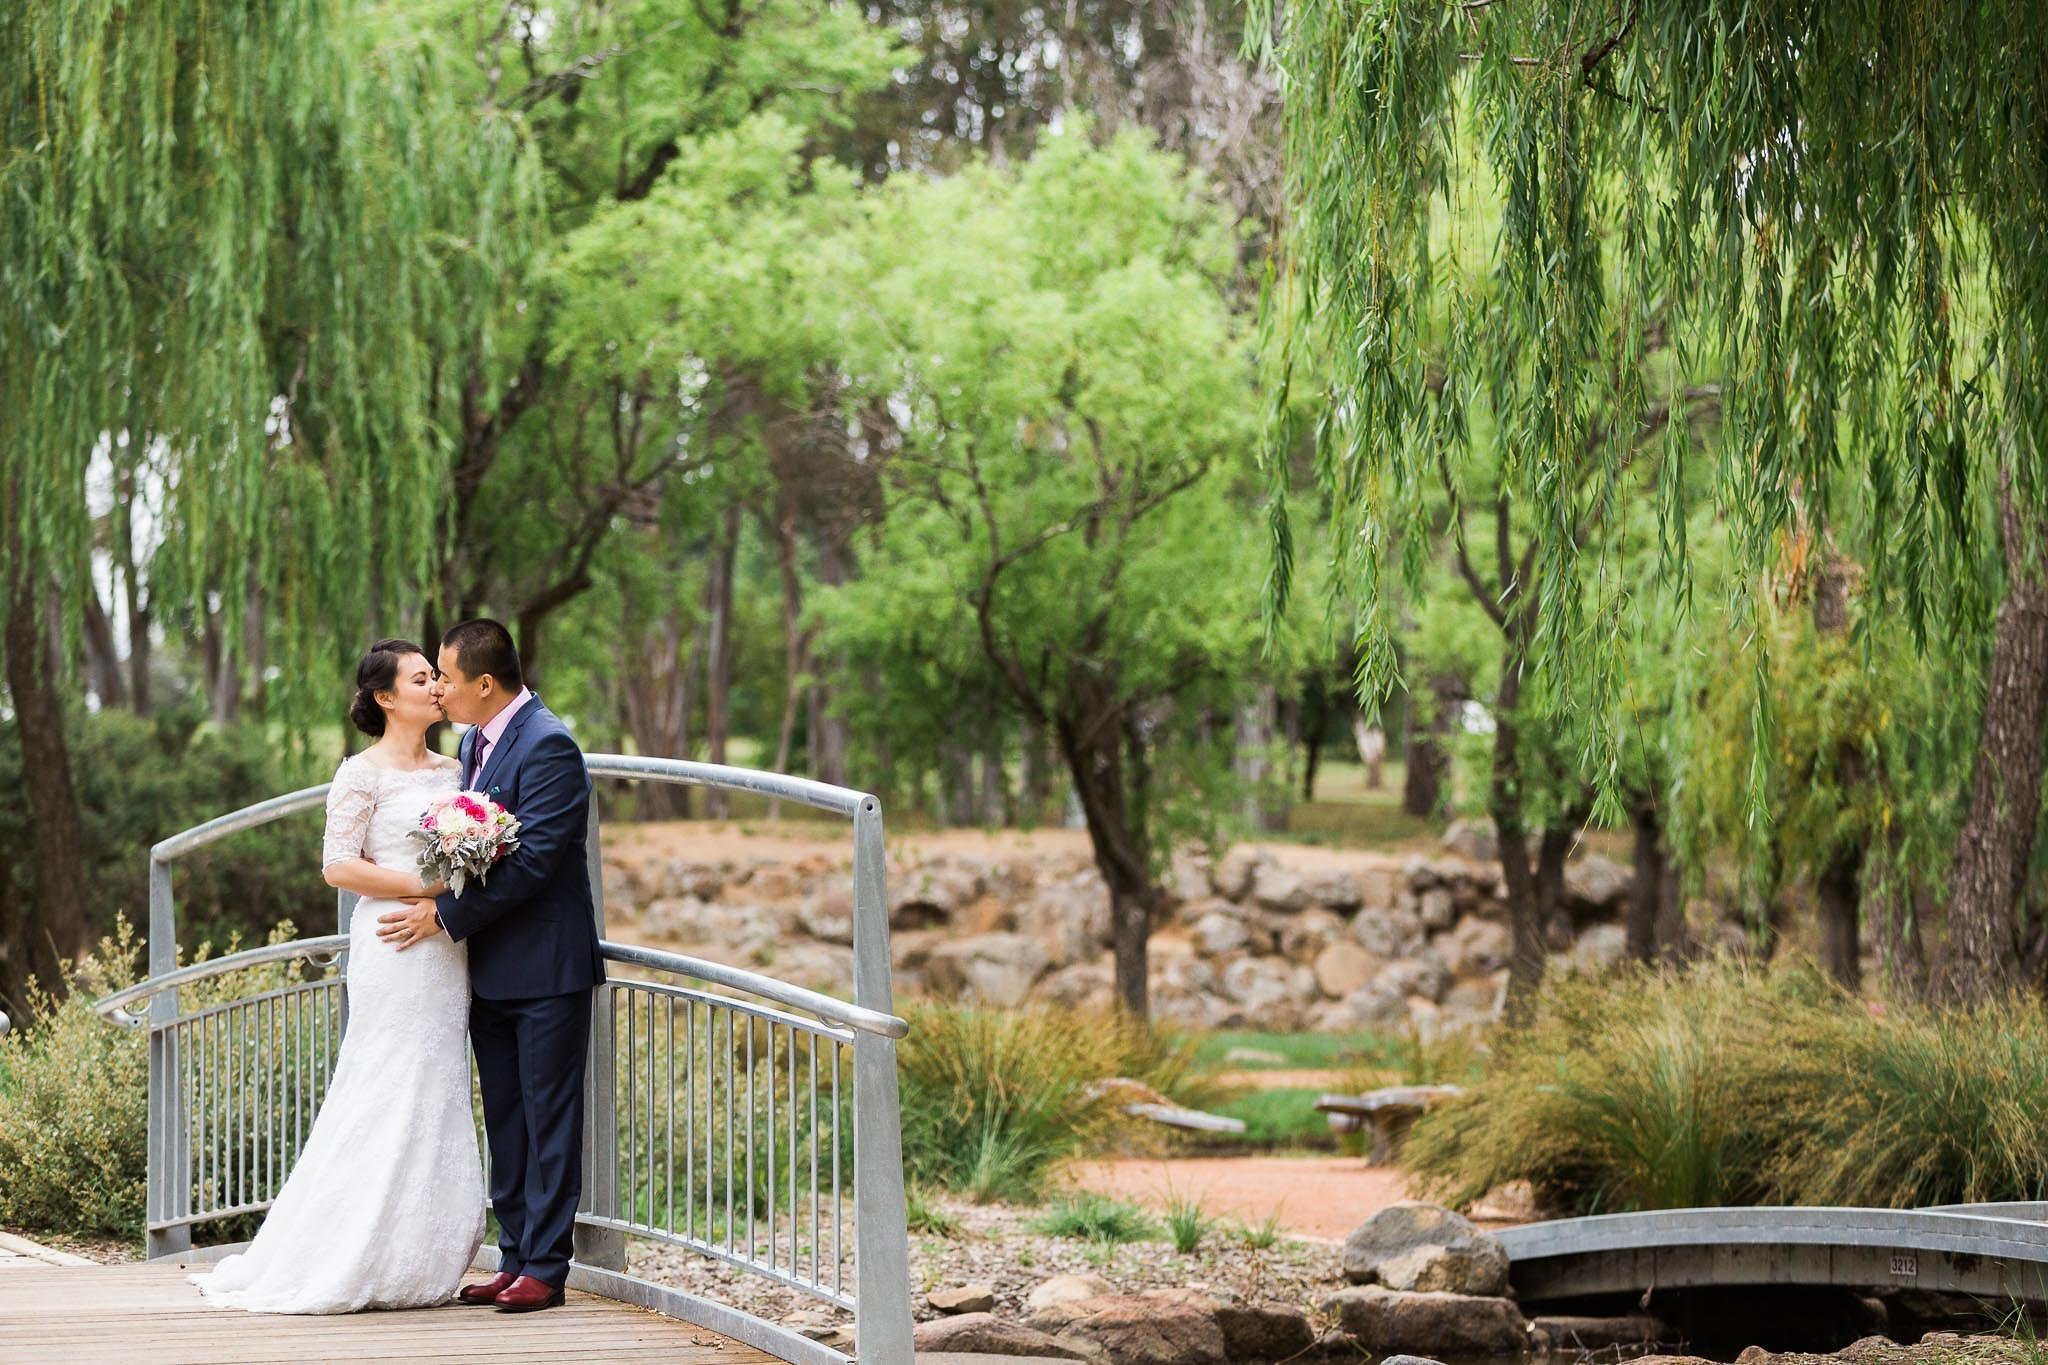 Wedding Photography - Western Park Canberra